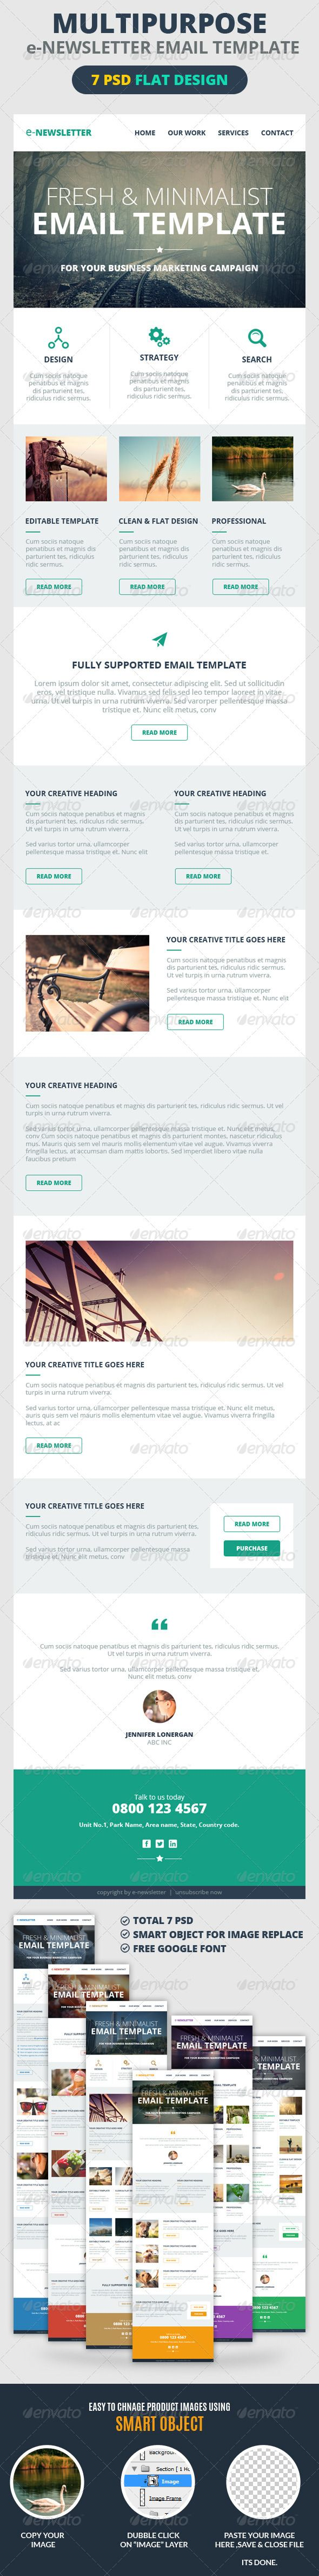 Best ENewsletter Template Images On   Newsletter